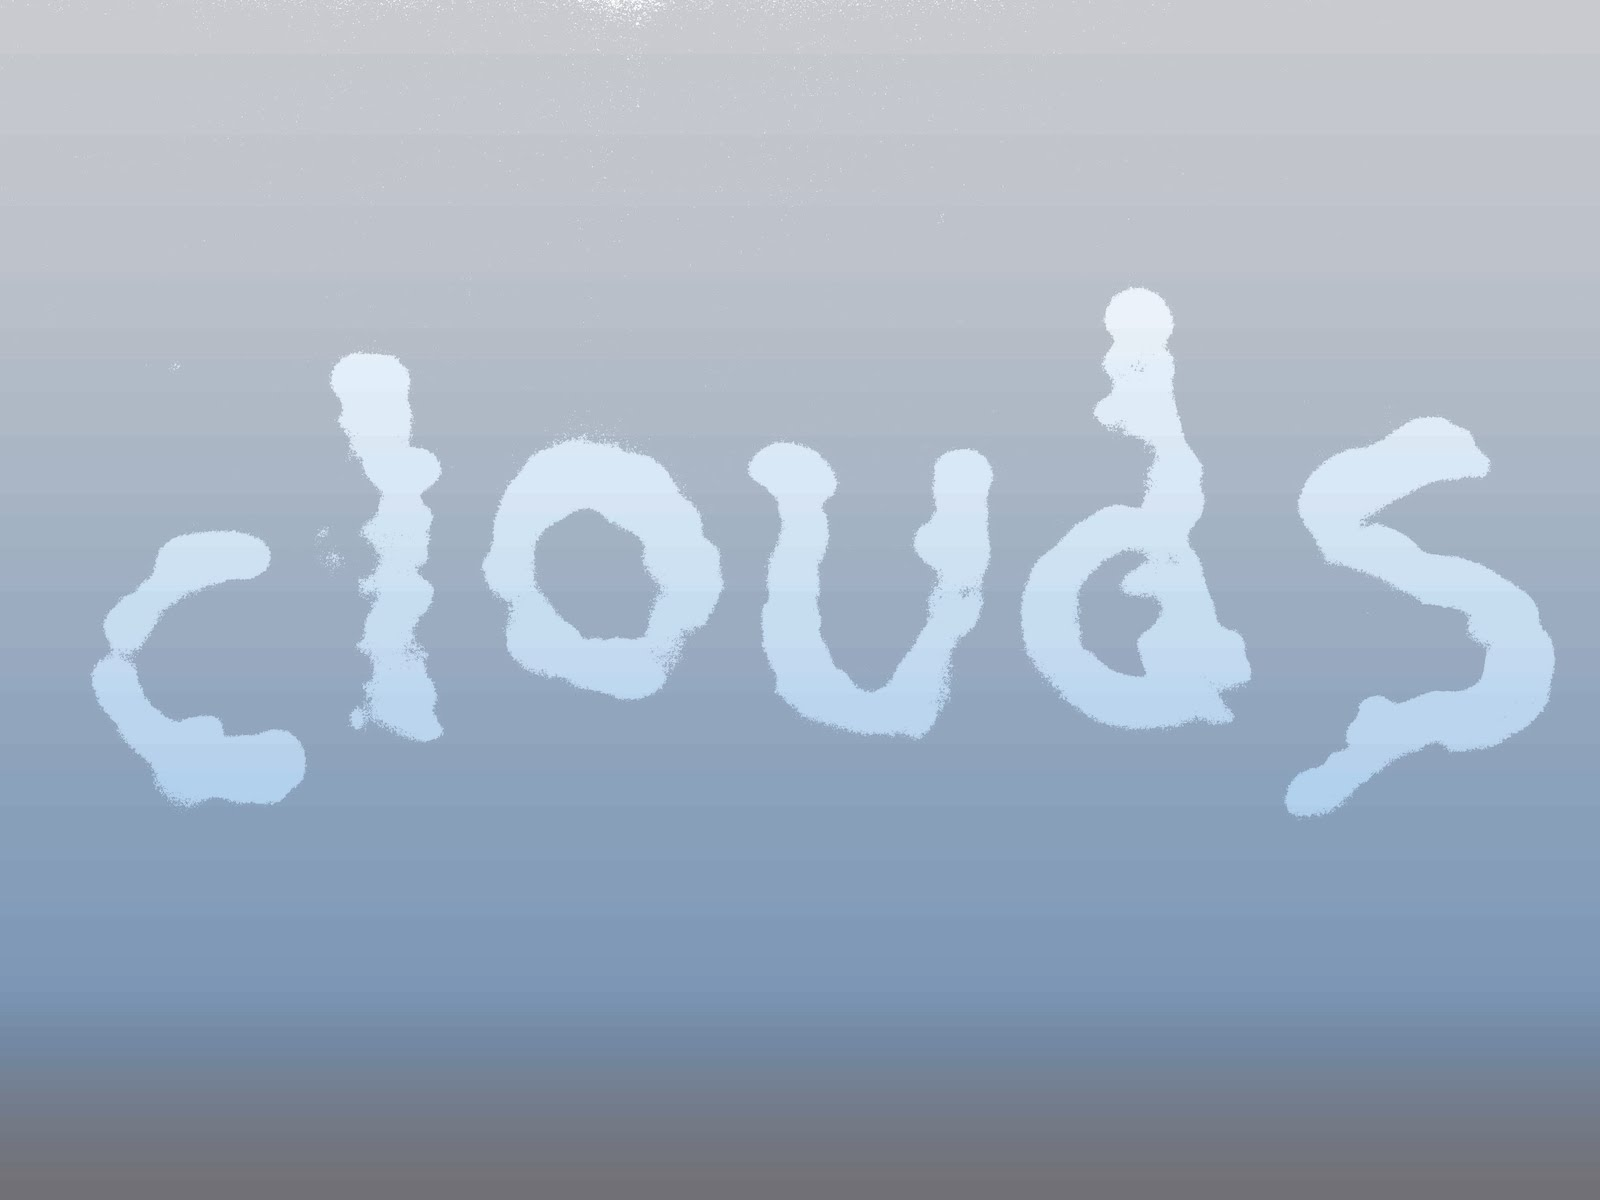 on clouds! soon will be back!